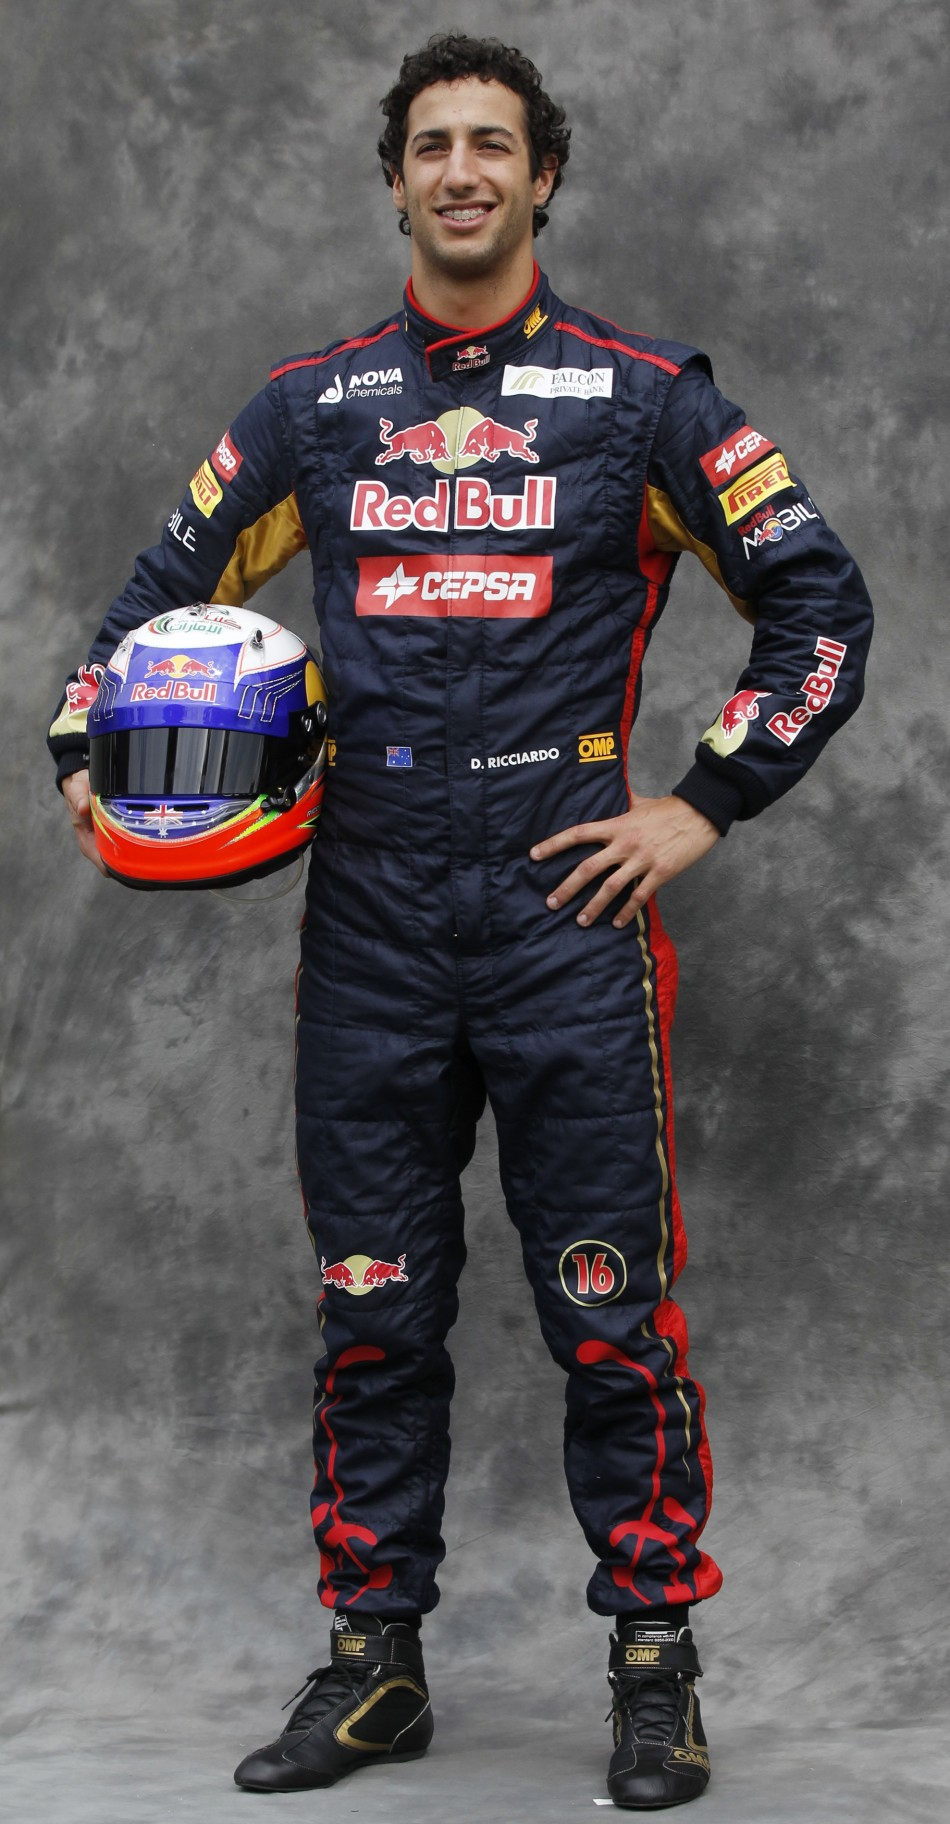 Toro Rosso Formula One driver Ricciardo poses prior to the Australian F1 Grand Prix at the Albert Park circuit in Melbourne